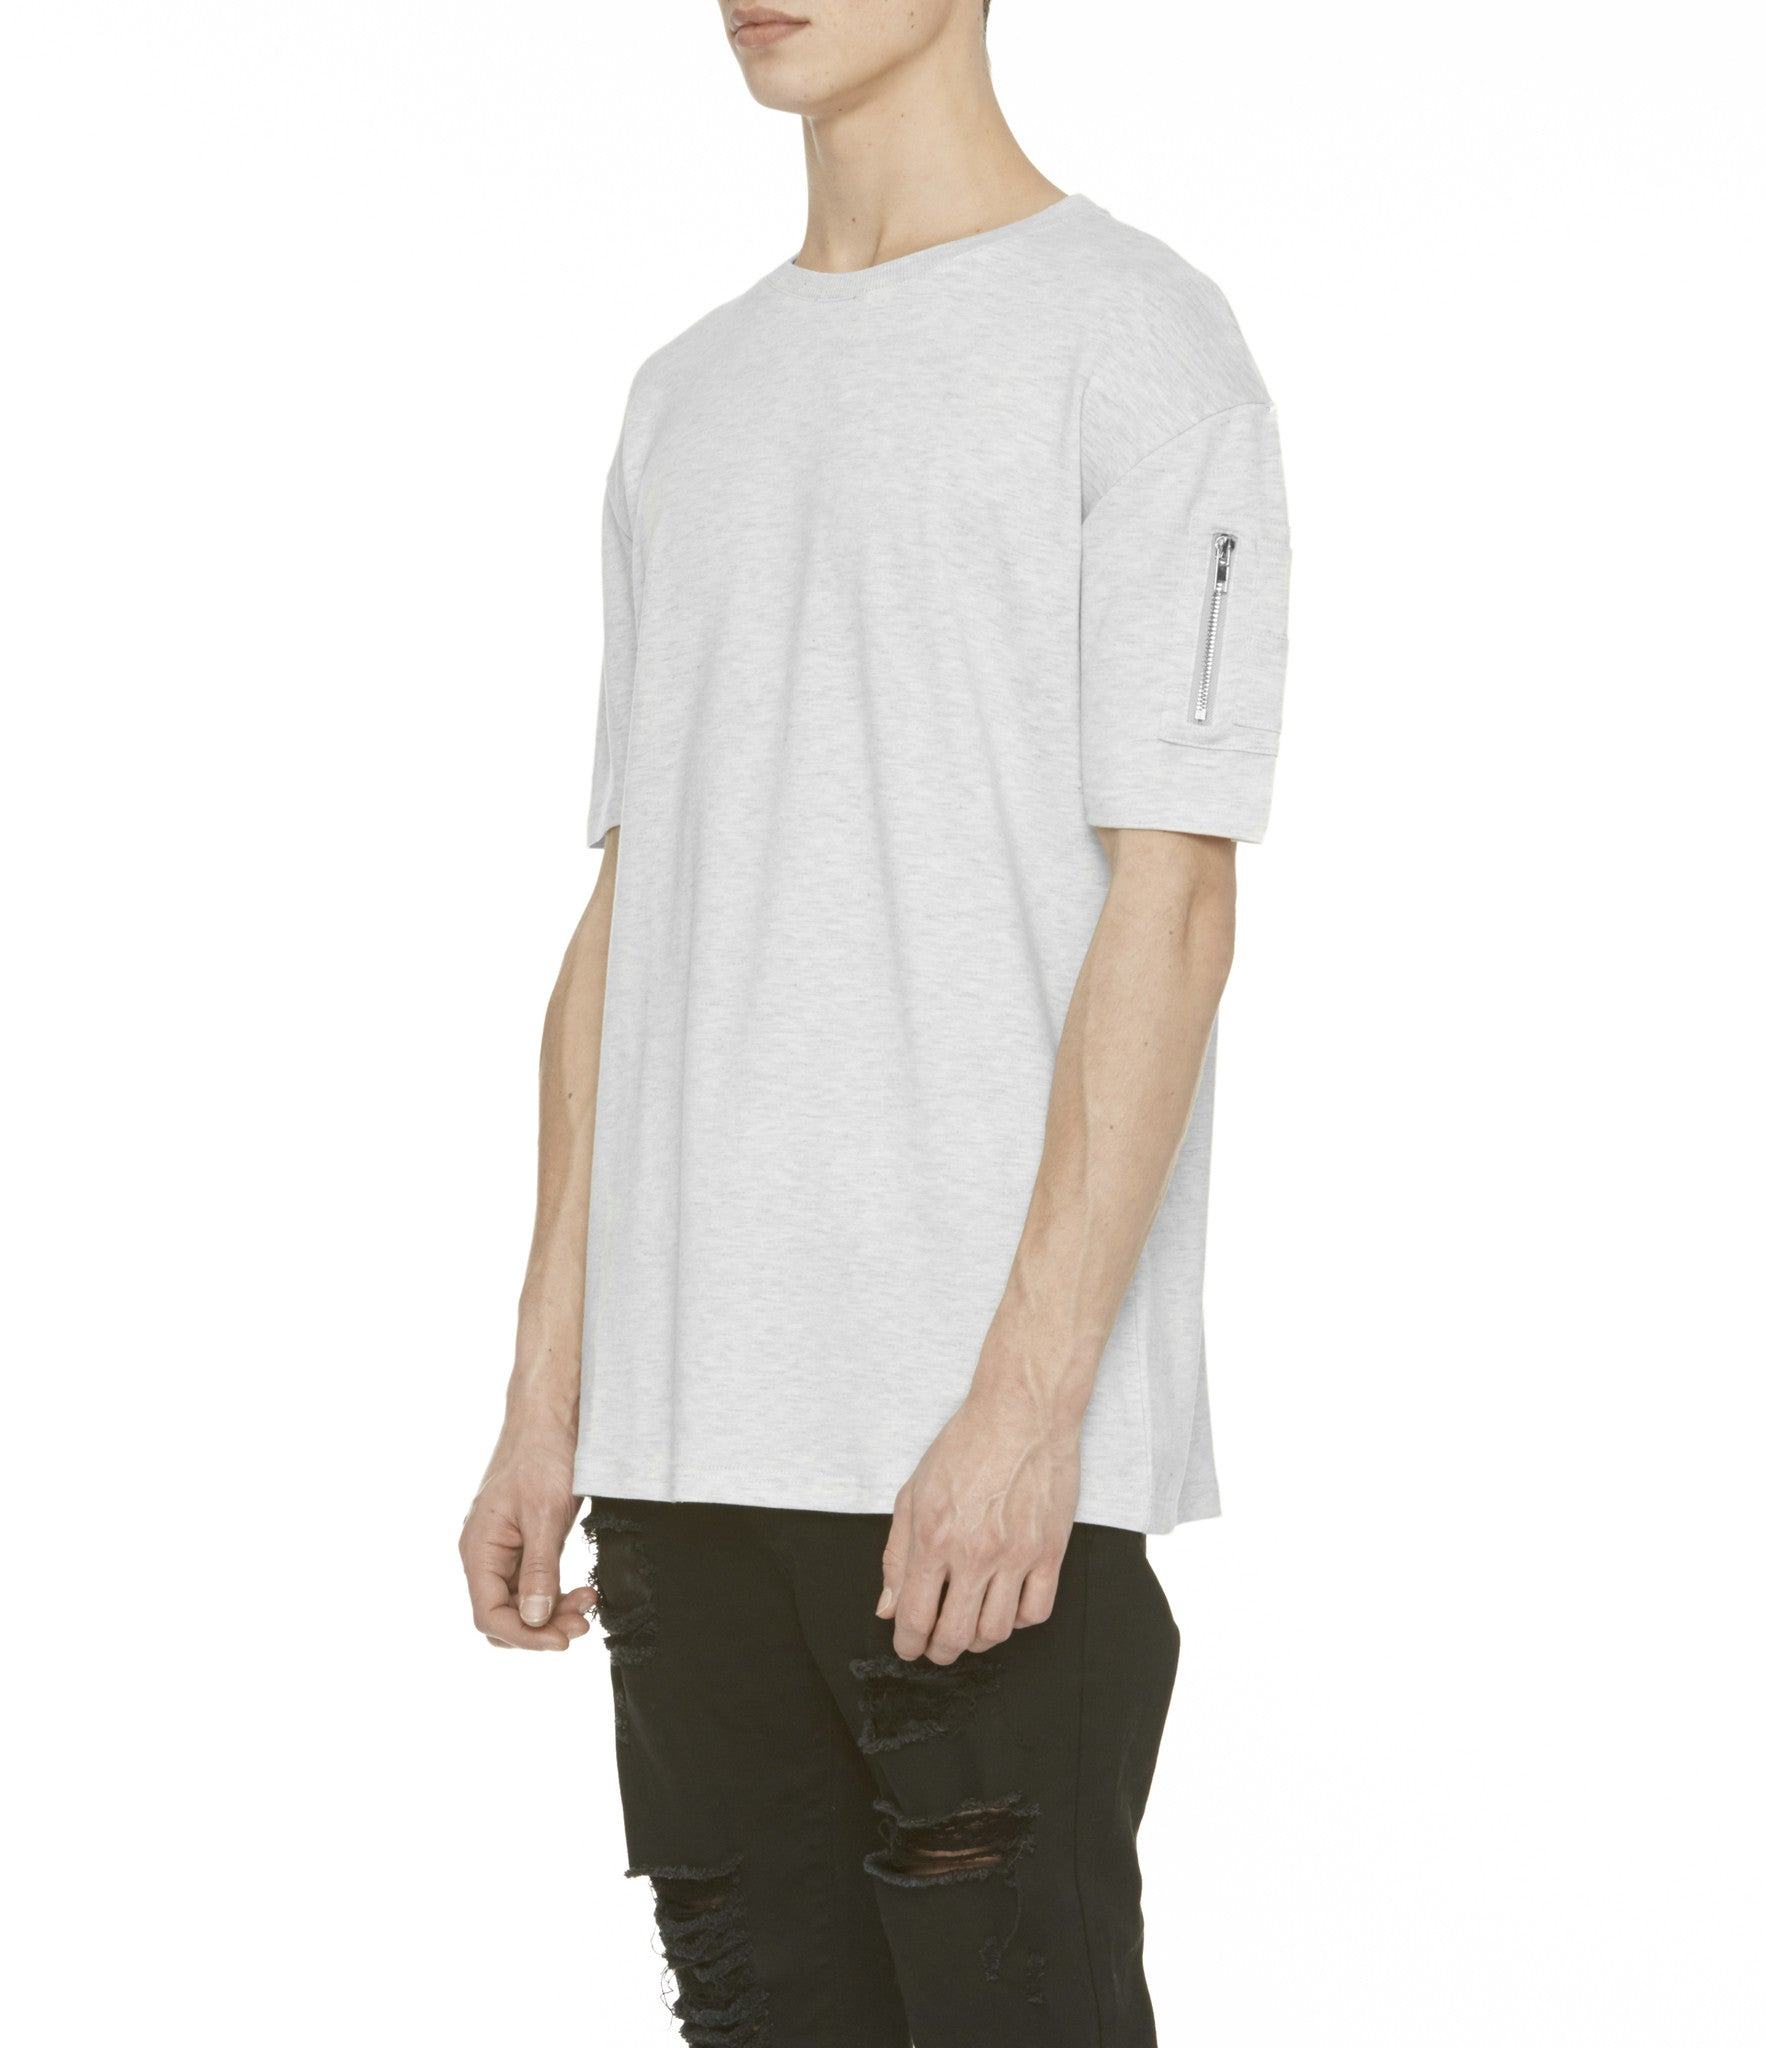 TS222 Drop Shoulder Utility Tee - Heather Grey - underated london - underatedco - 7